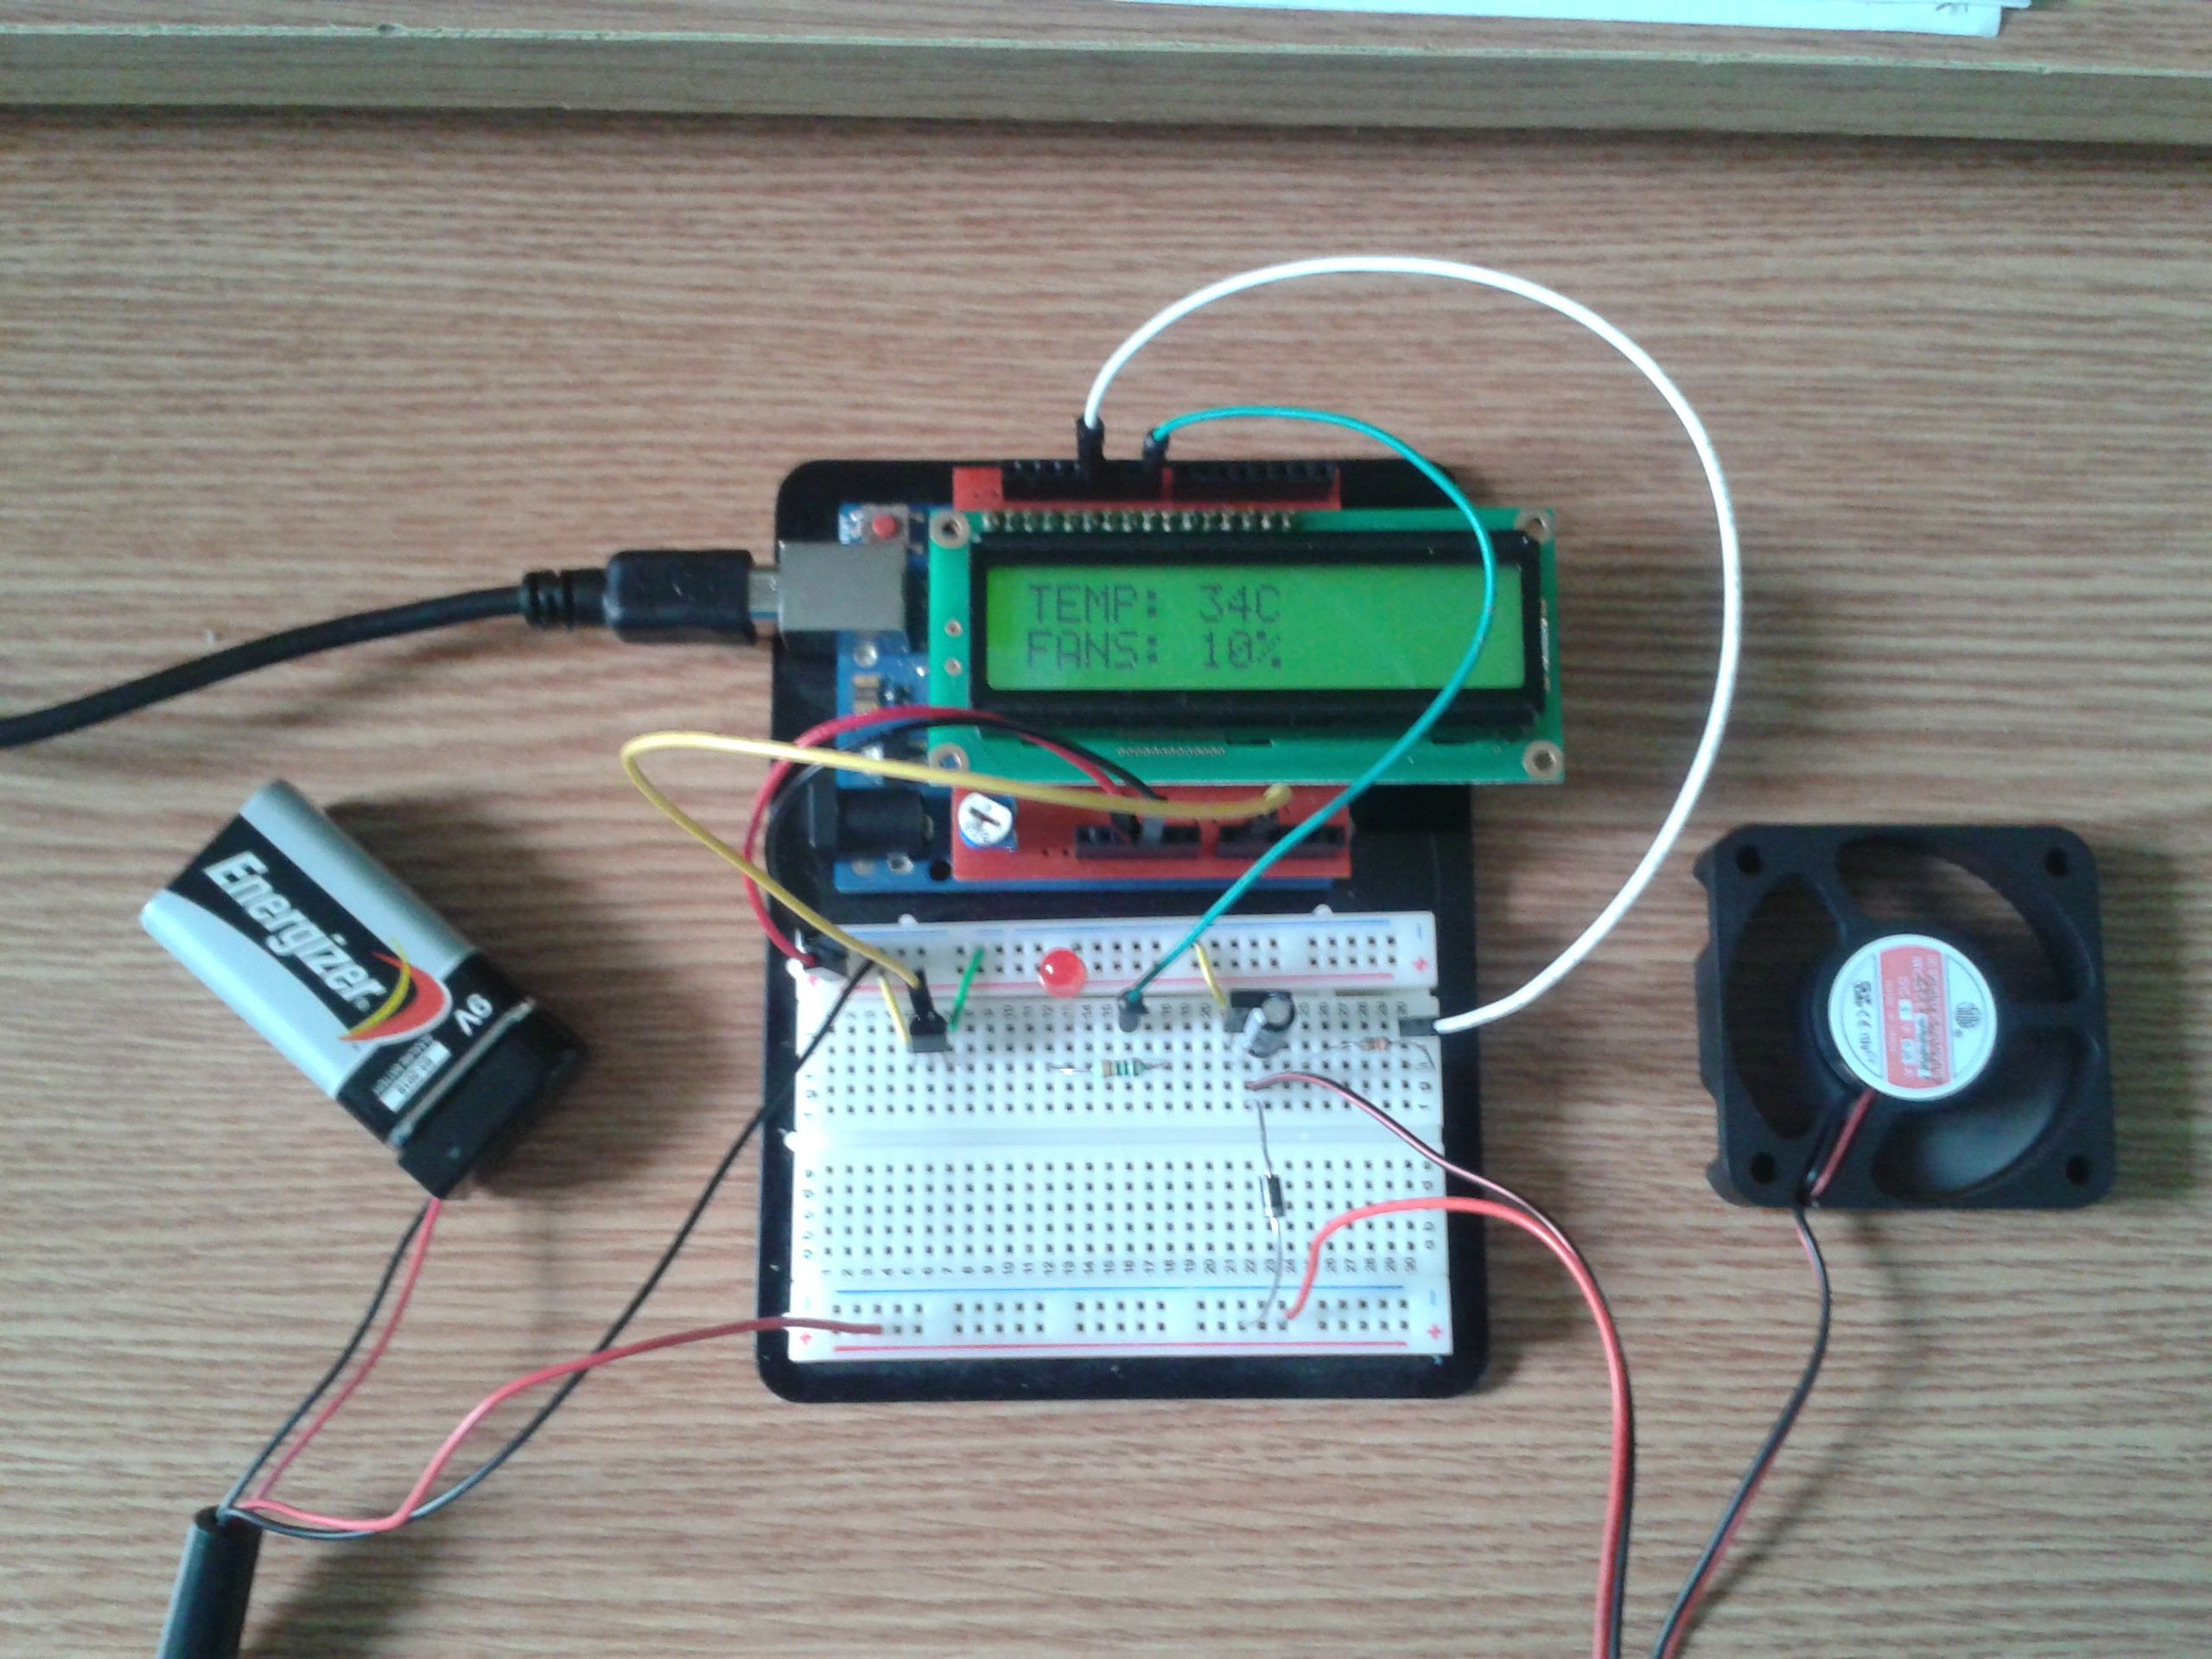 Test Setup Arduino In 2018 Pinterest Electronics Cool Projects And Microcontrollers Engineering Science Microcontroller Board Custom Pc